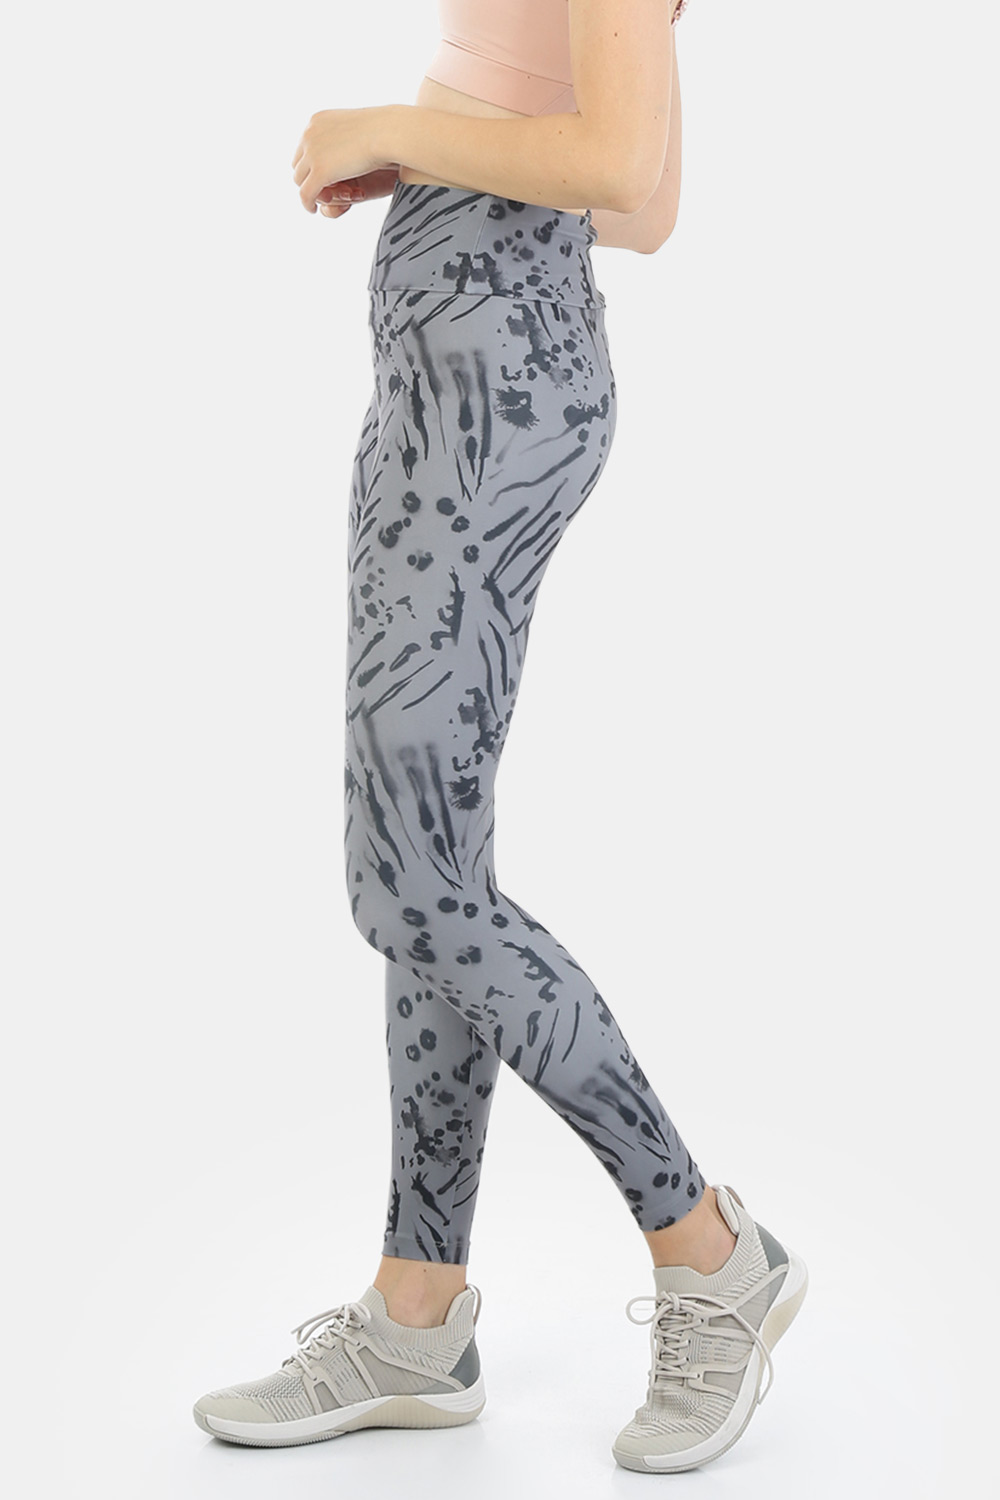 Wild sport leggings